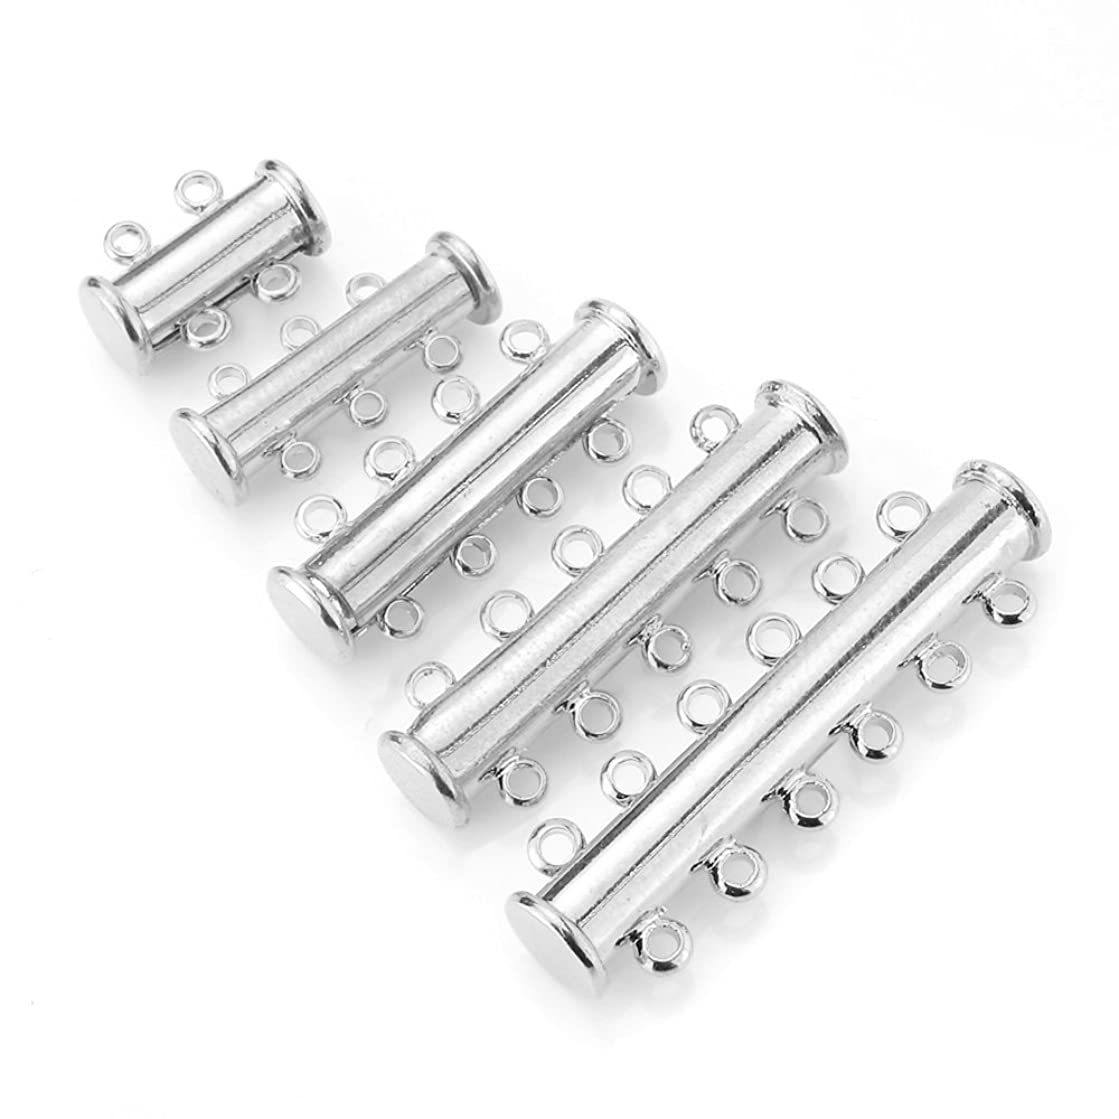 BEADNOVA 10pcs Silver Plated Multi Strand Slide Magnetic Tube Lock Clasp/Connectors for Jewelry Necklace Bracelet Making Findings